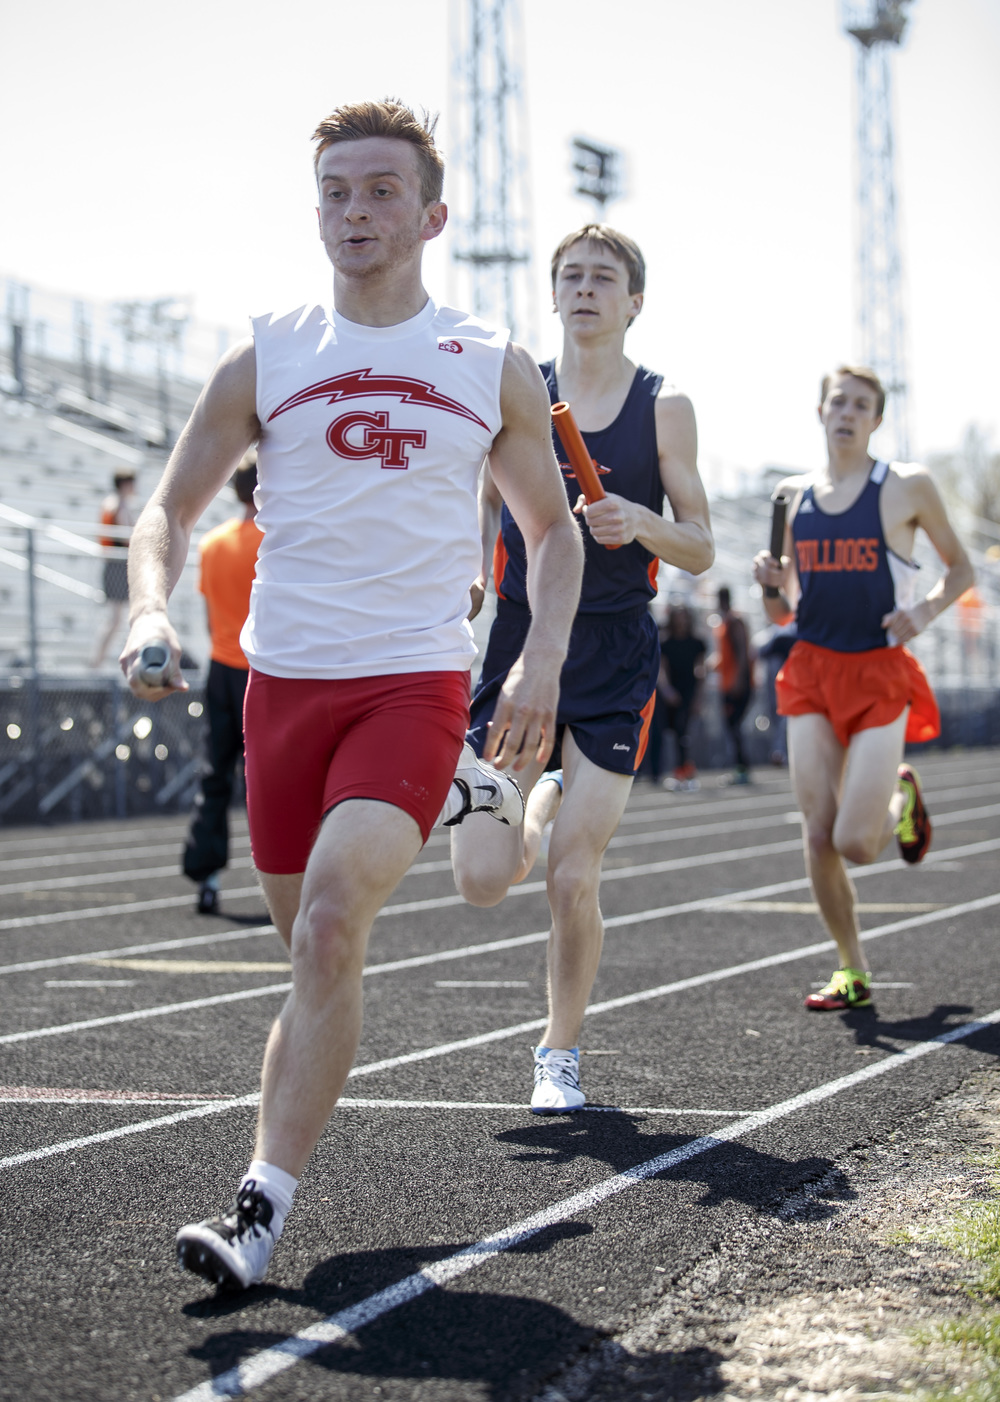 Glenwood's Cameron Williams runs the first leg of the 4x800m Relay during the Capital City Classic track and field meet at Memorial Stadium, Saturday, April 16, 2016, in Springfield, Ill. Glenwood won the event setting a new meet record with a time of 8:06.79. Justin L. Fowler/The State Journal-Register